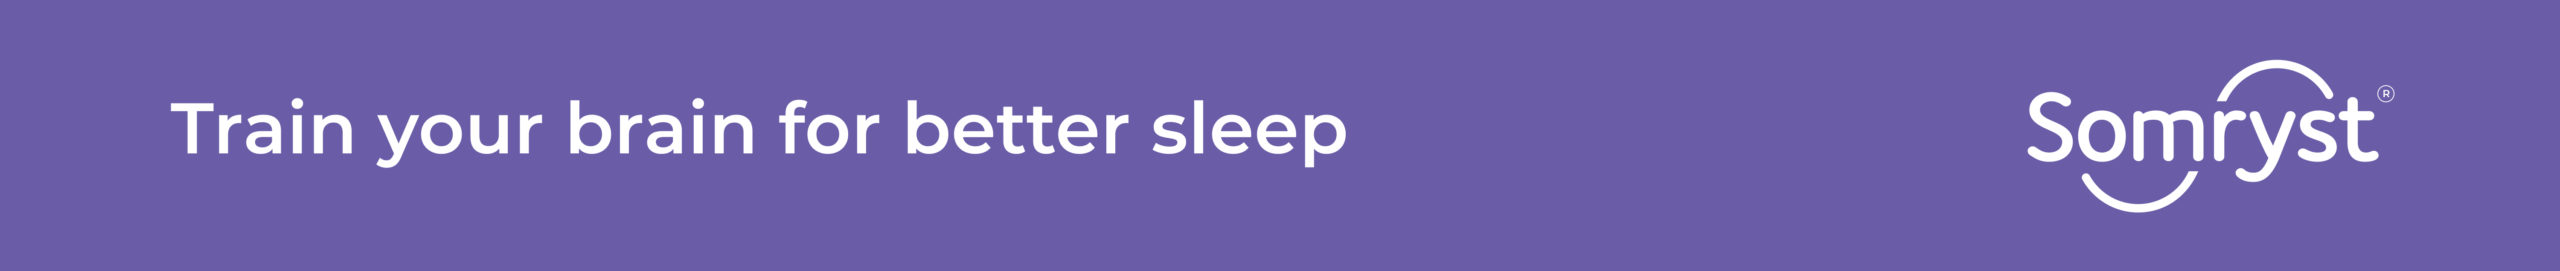 Better sleep starts with a clinically proven treatment delivered directly to your smartphone.</br></br>